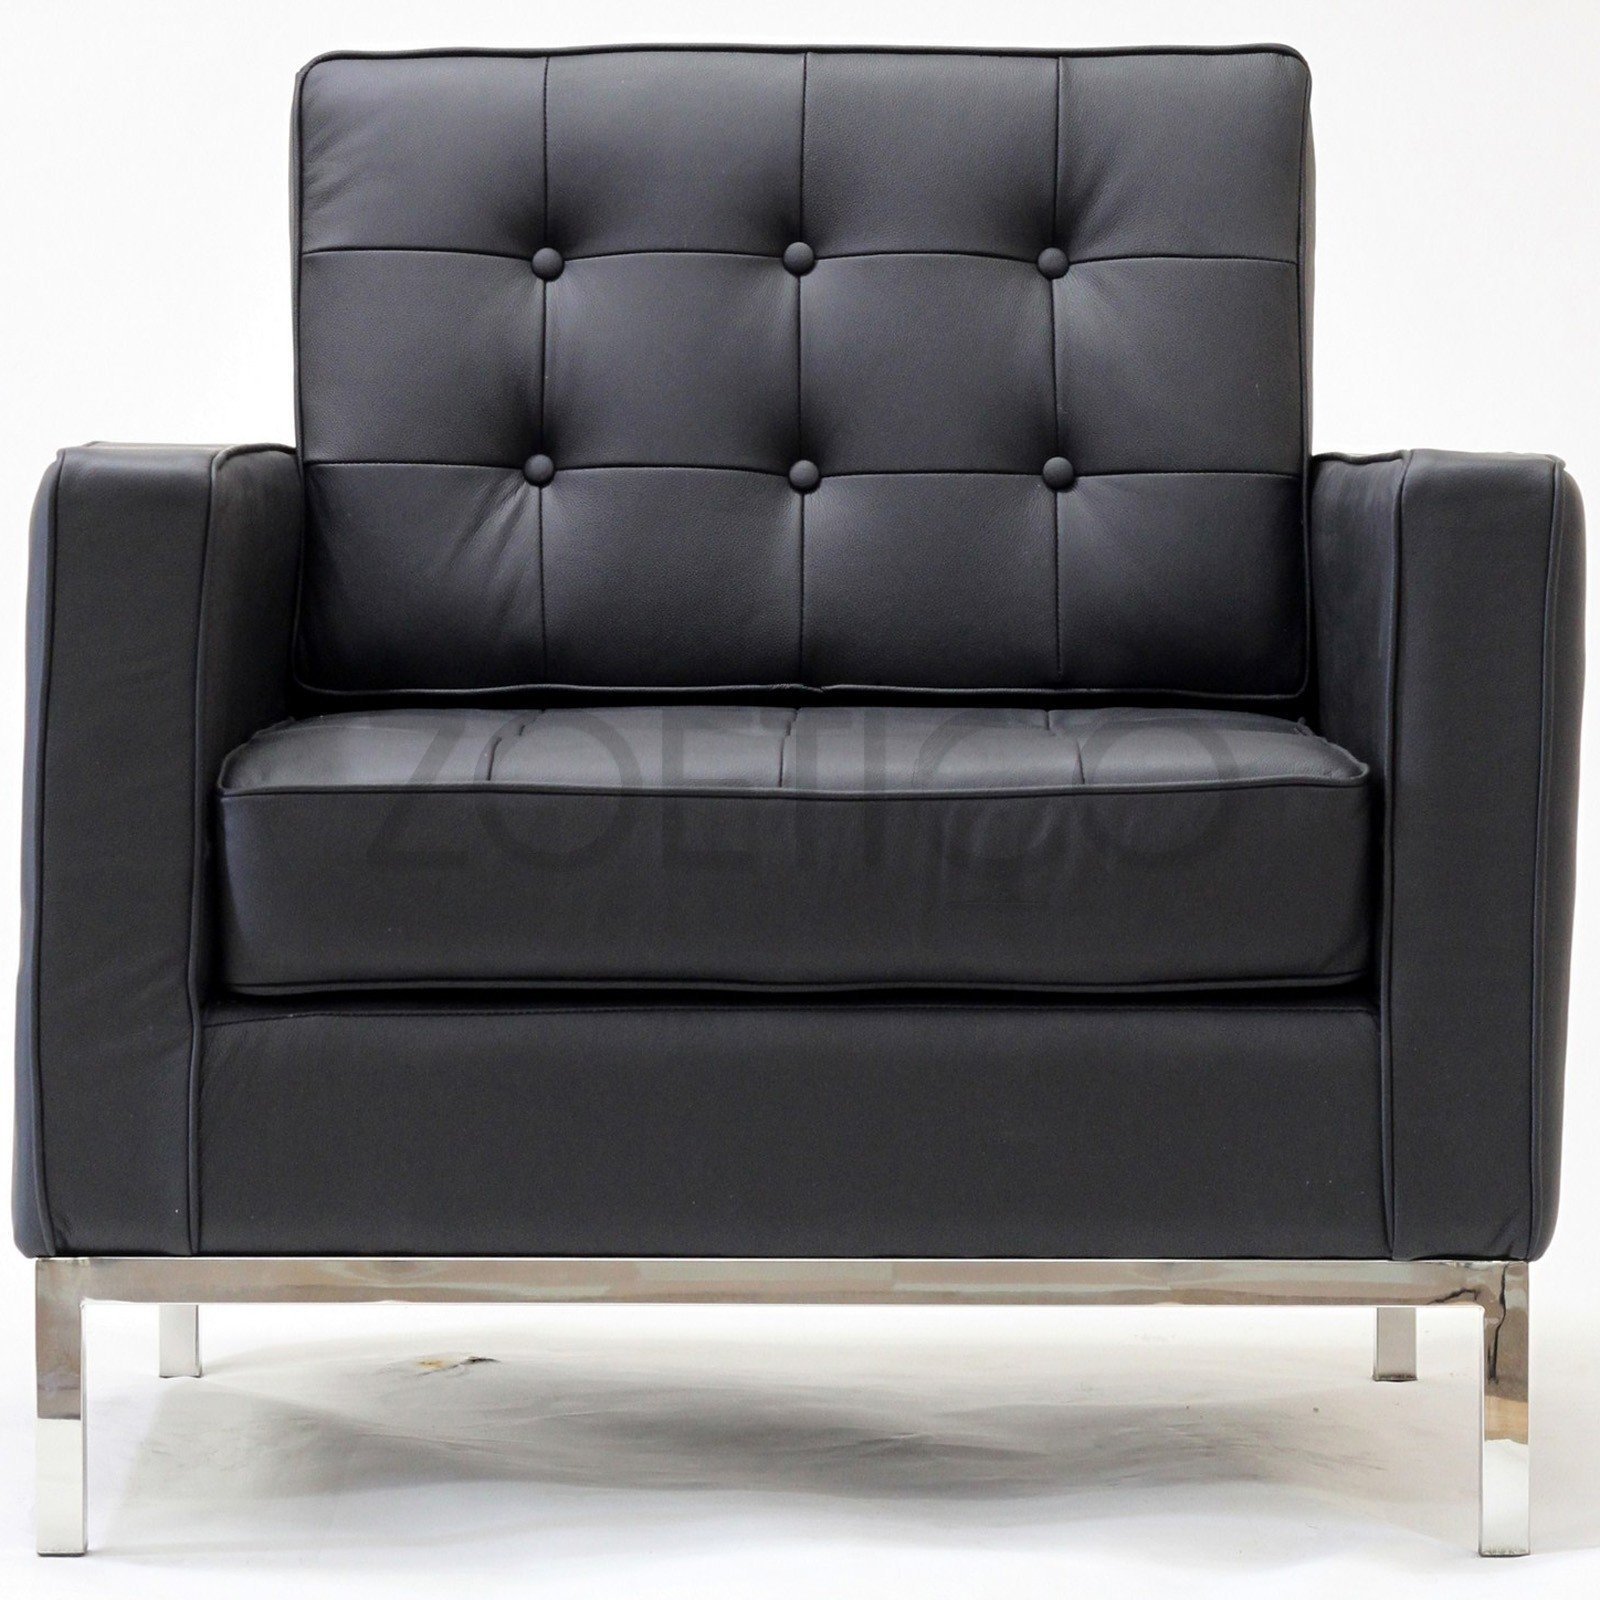 florence knoll sofa review source direct limited 15 photos leather sofas ideas